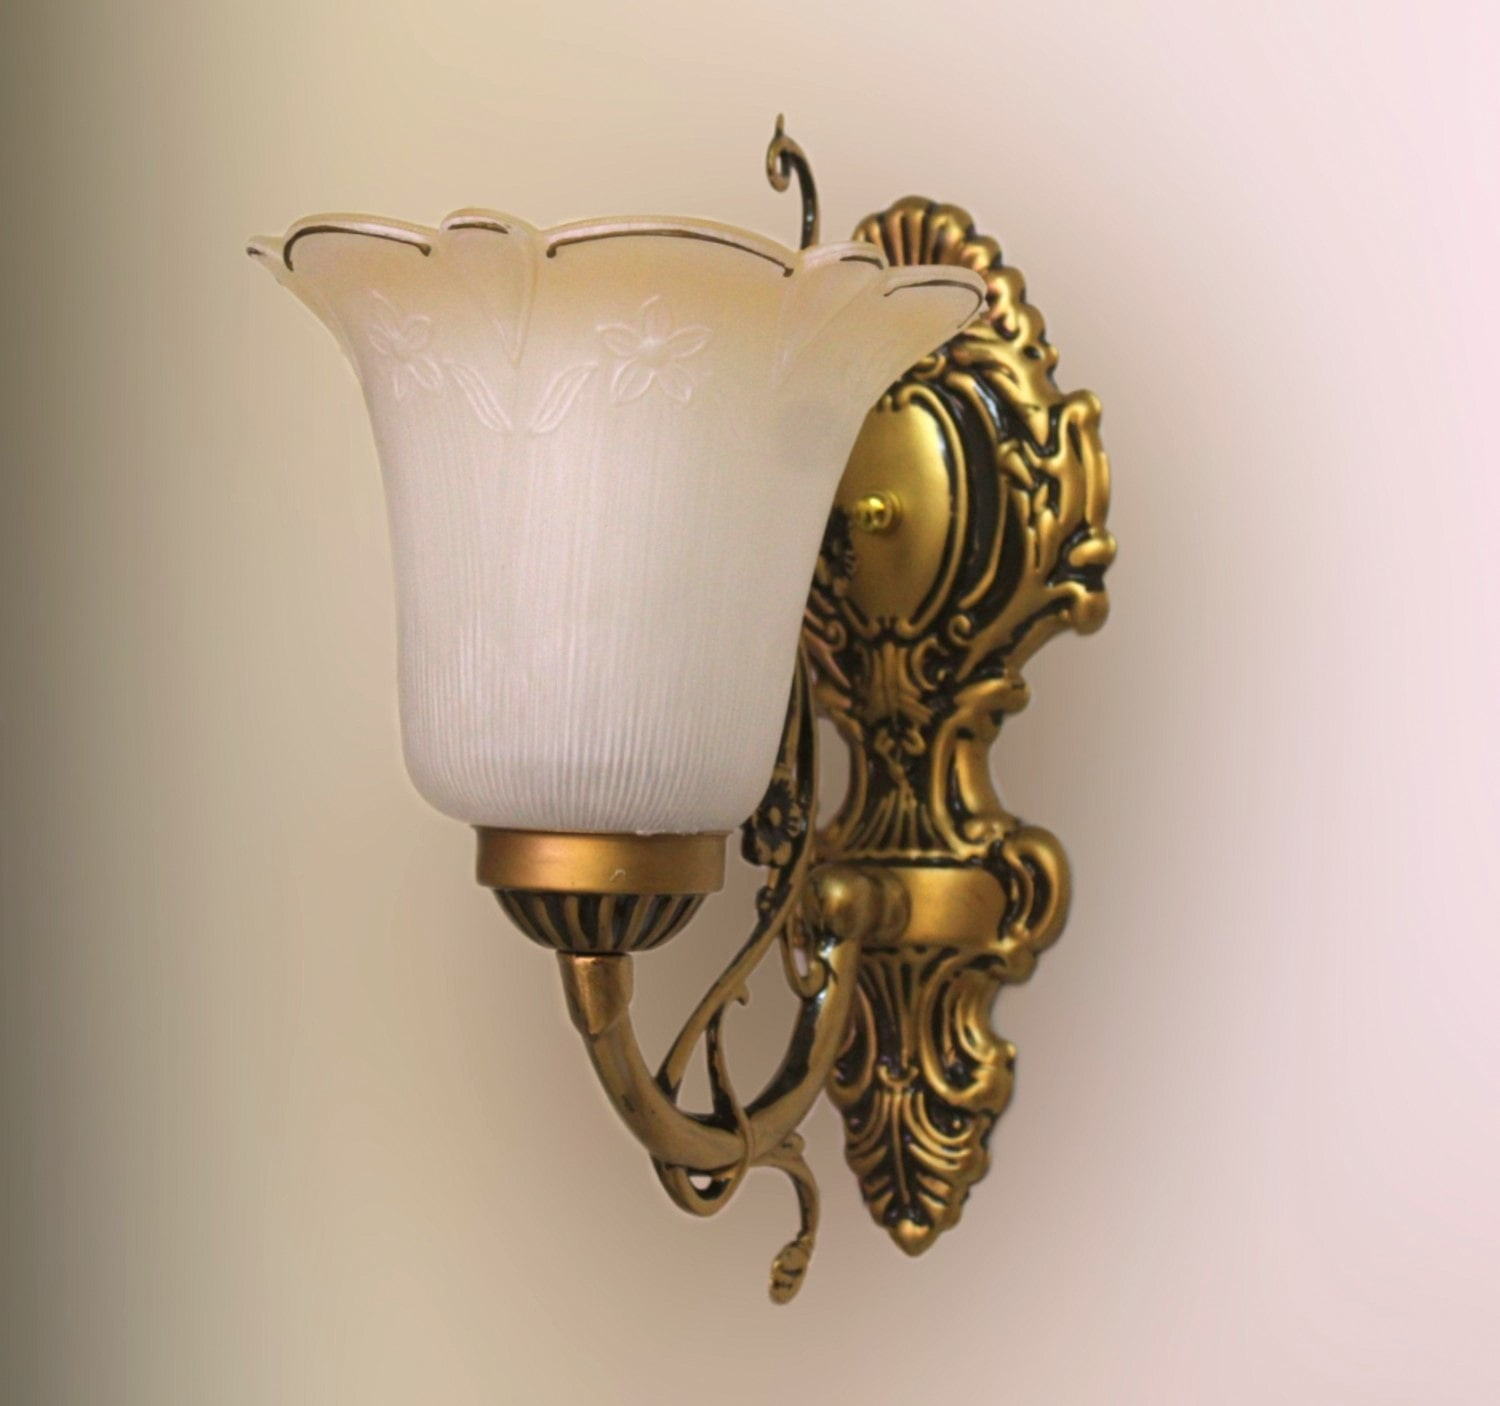 Wall Lights Buy Wall Lights Online At Best Prices In India Jhoomarwala